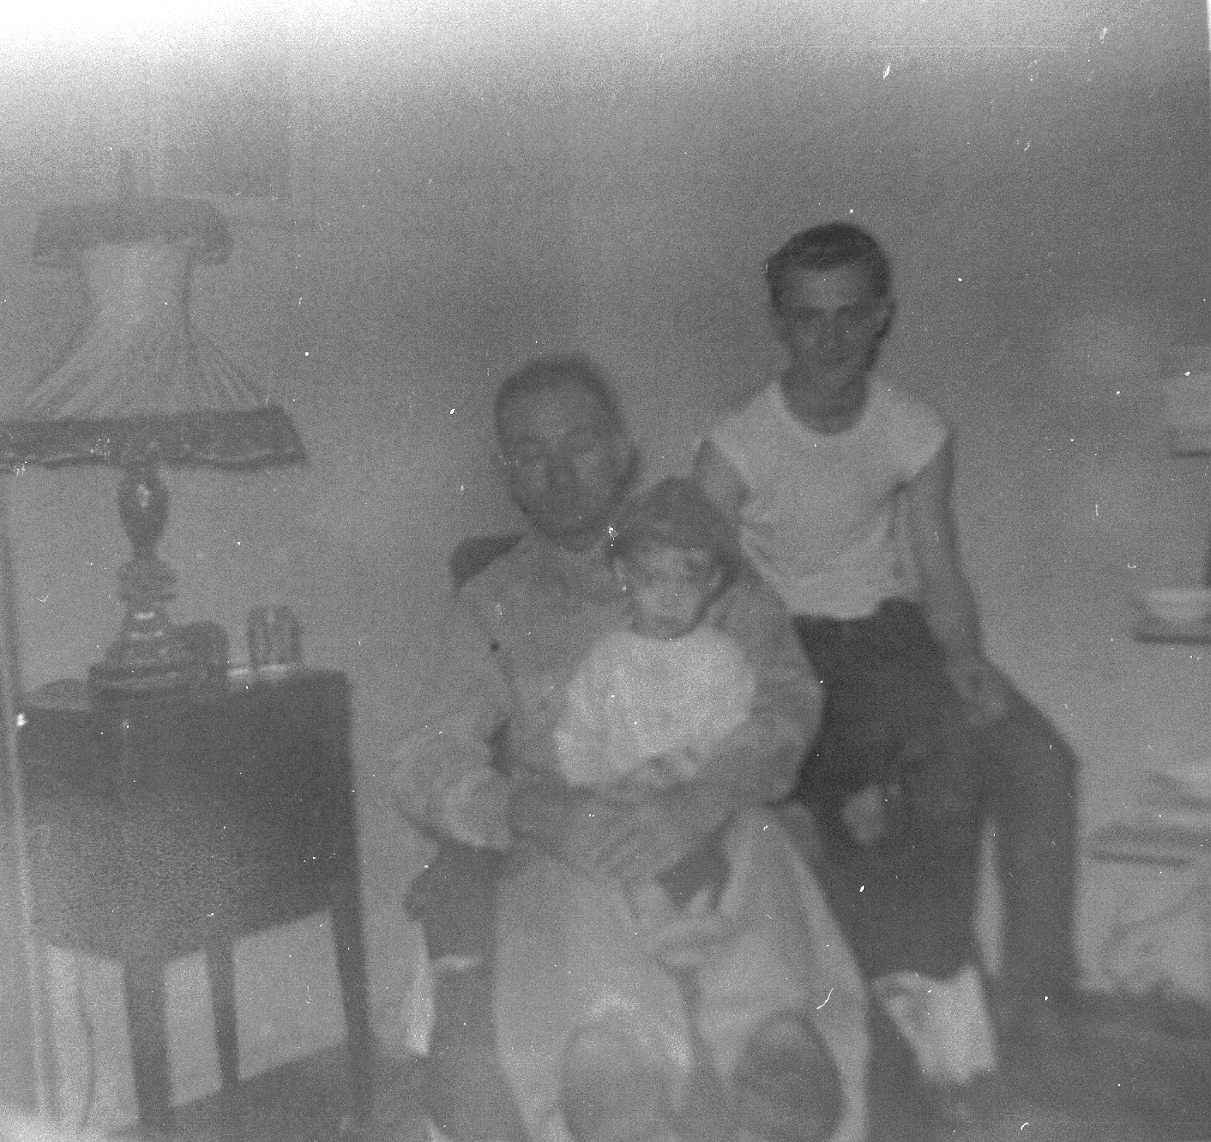 Uncle Joe, My older Brother Jimmy and a little boy, Me the Webmaster